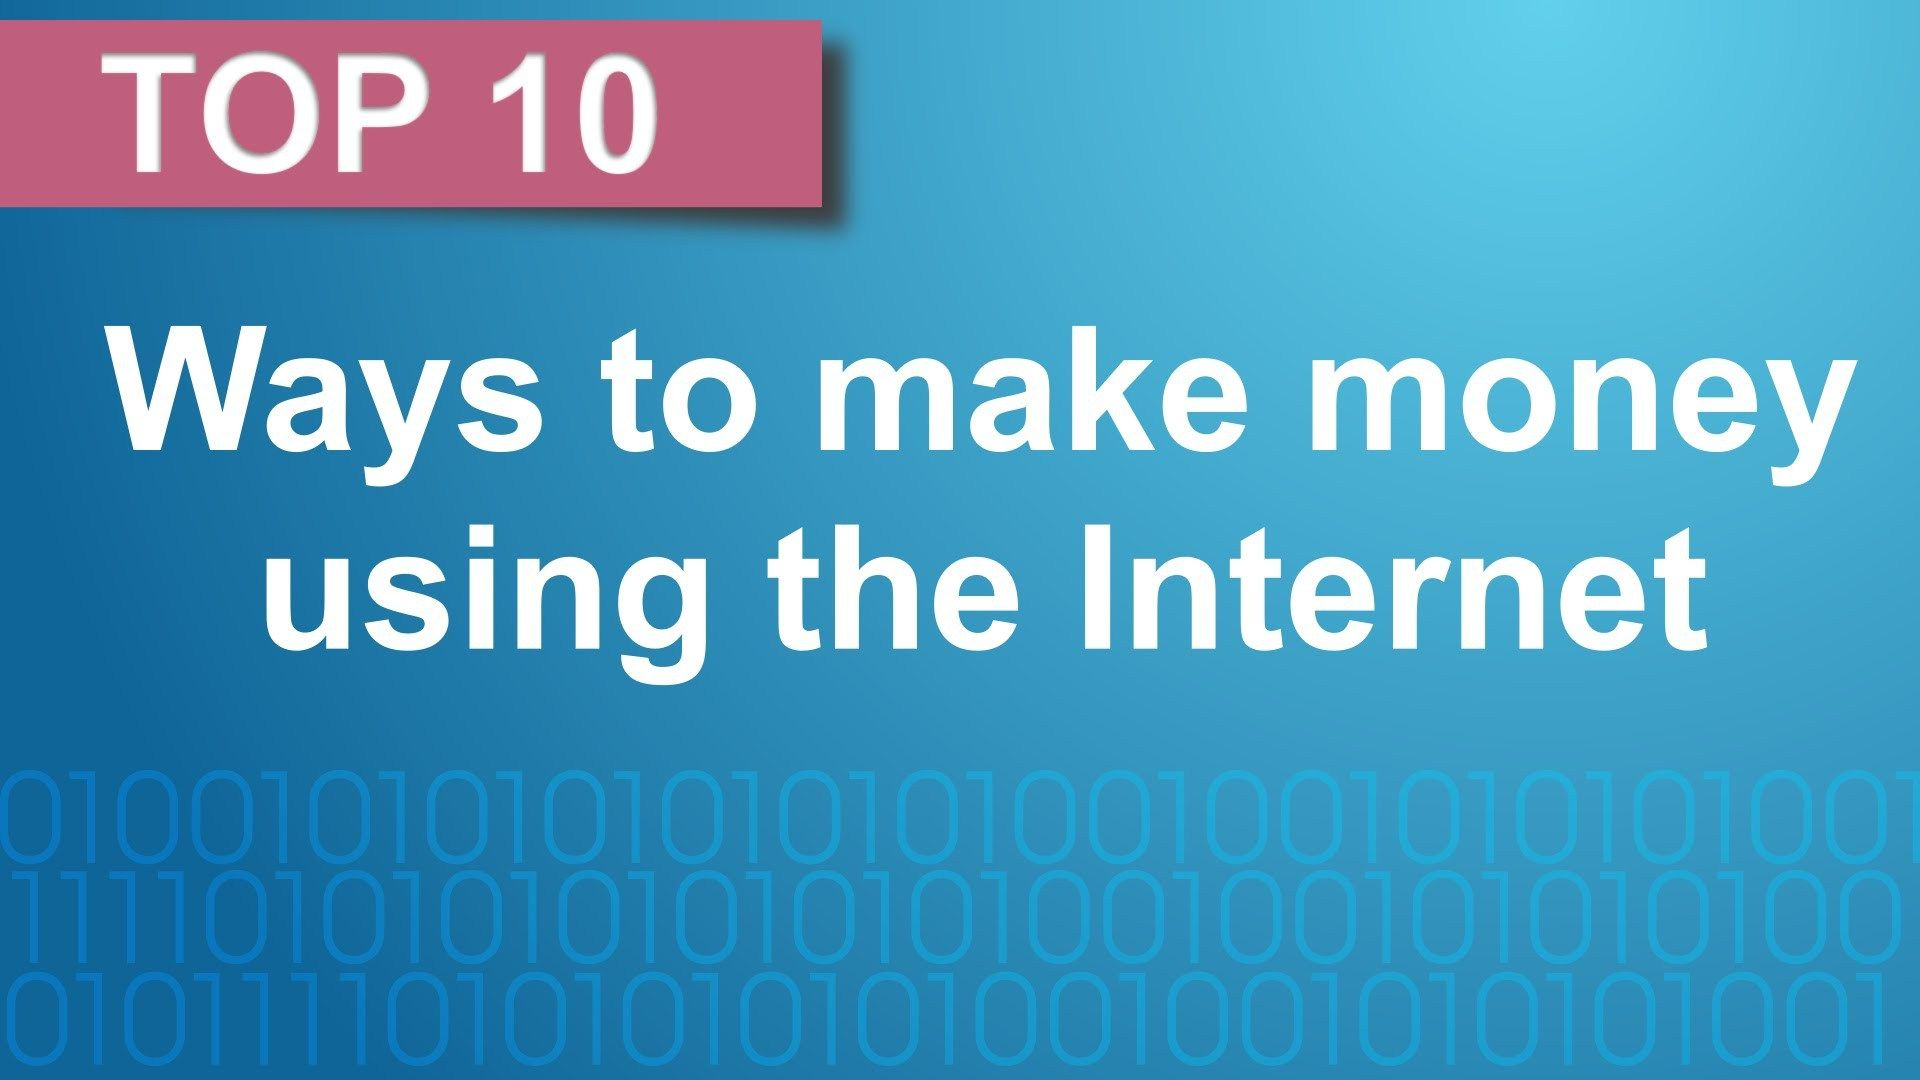 Top 10 Ways To Make Money Using The Internet - WATCH VIDEO here -> http://makeextramoneyonline.org/top-10-ways-to-make-money-using-the-internet/ -    In this video we look at the top 10 ways to make money using the Internet, including affiliate marketing,